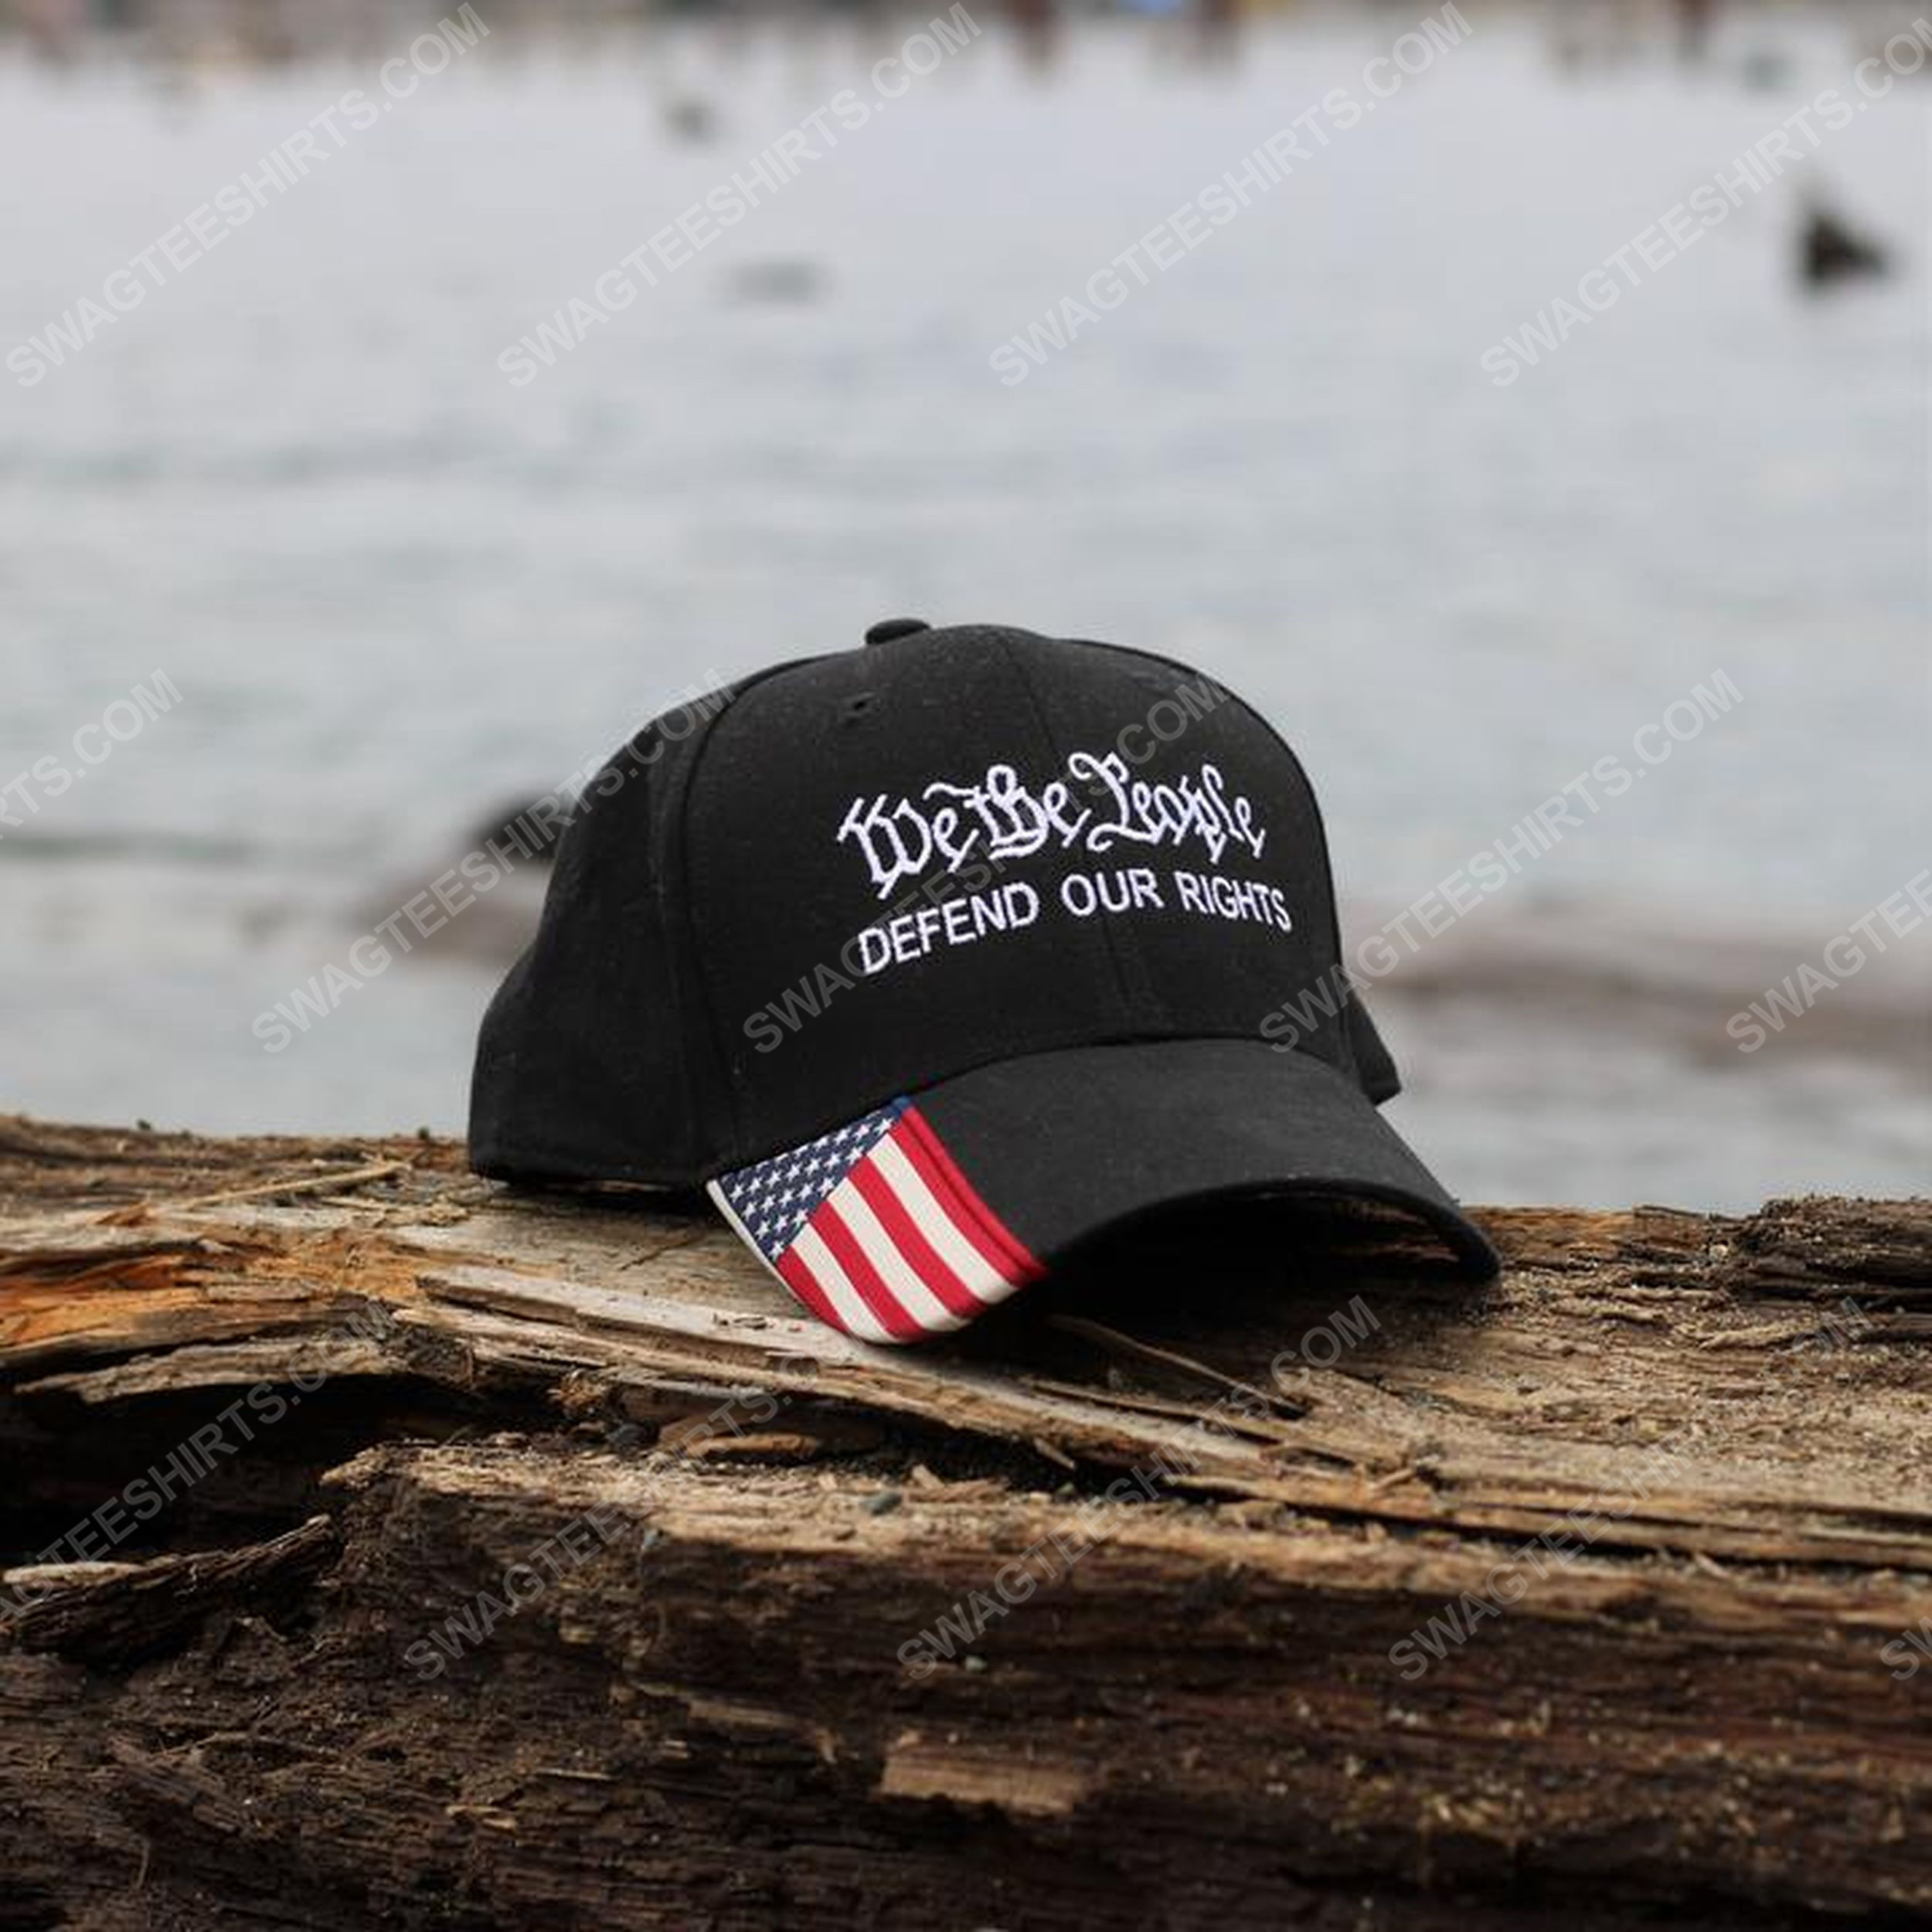 We the people defend our rights american flag full print classic hat 1